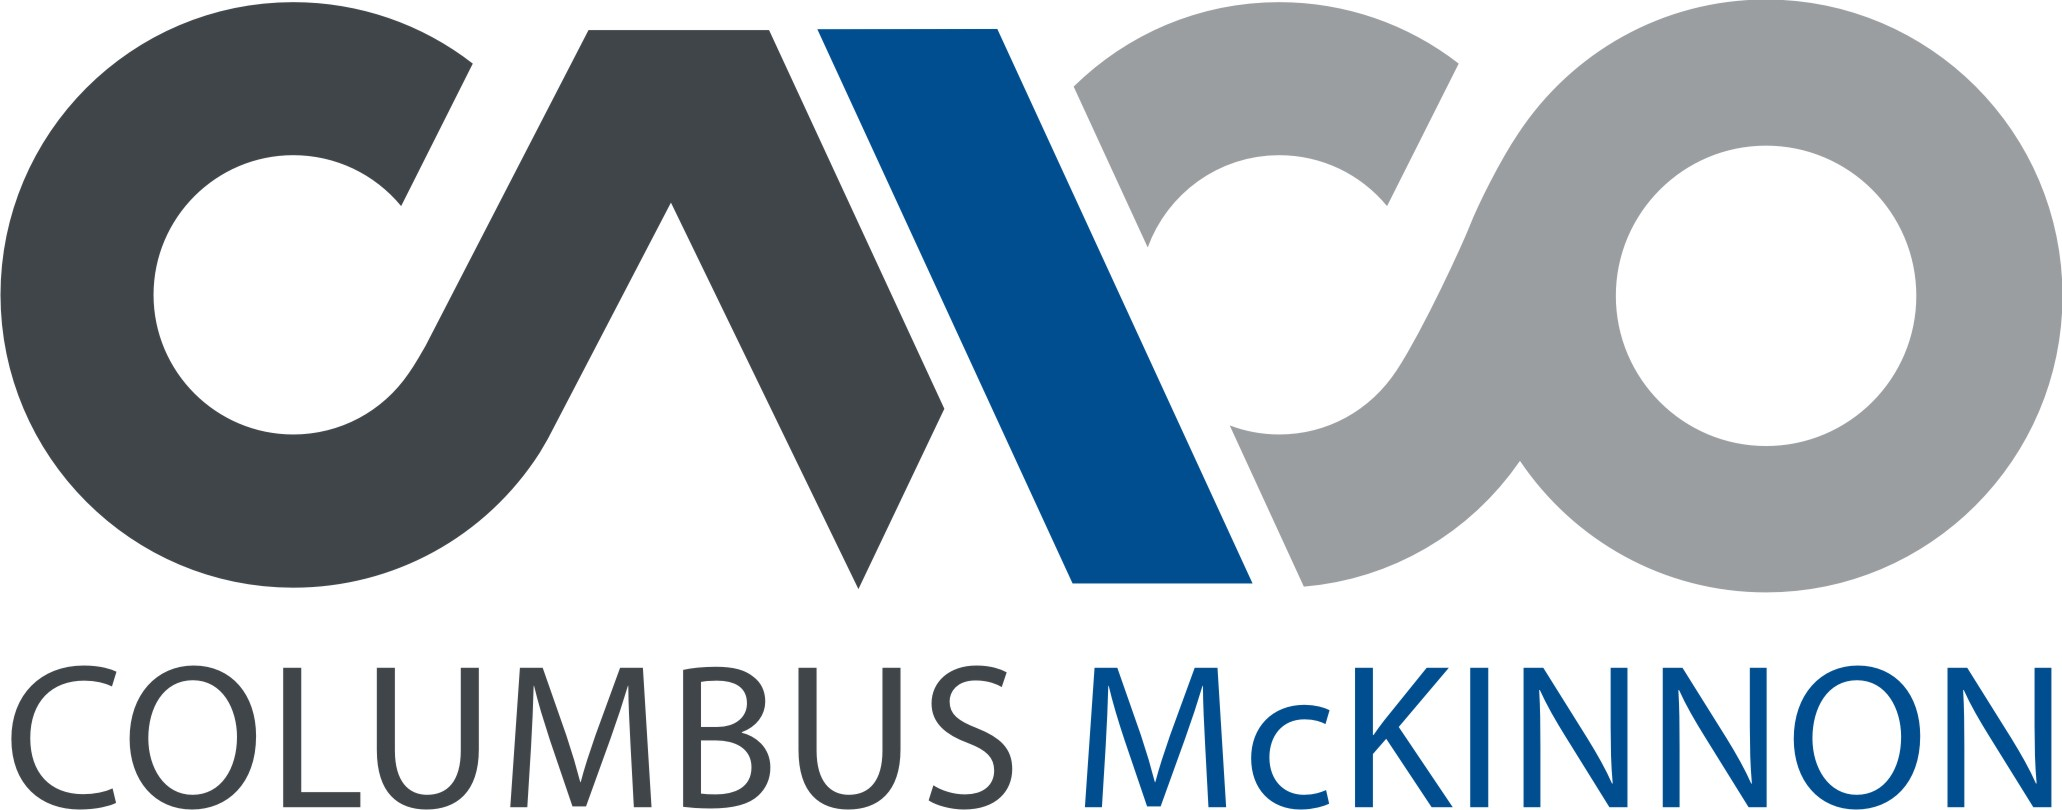 LTL IS THE MASTER UTILITY CHANNEL PARTNER FOR COLUMBUS MCKINNON PRODUCTS ACROSS CANADA